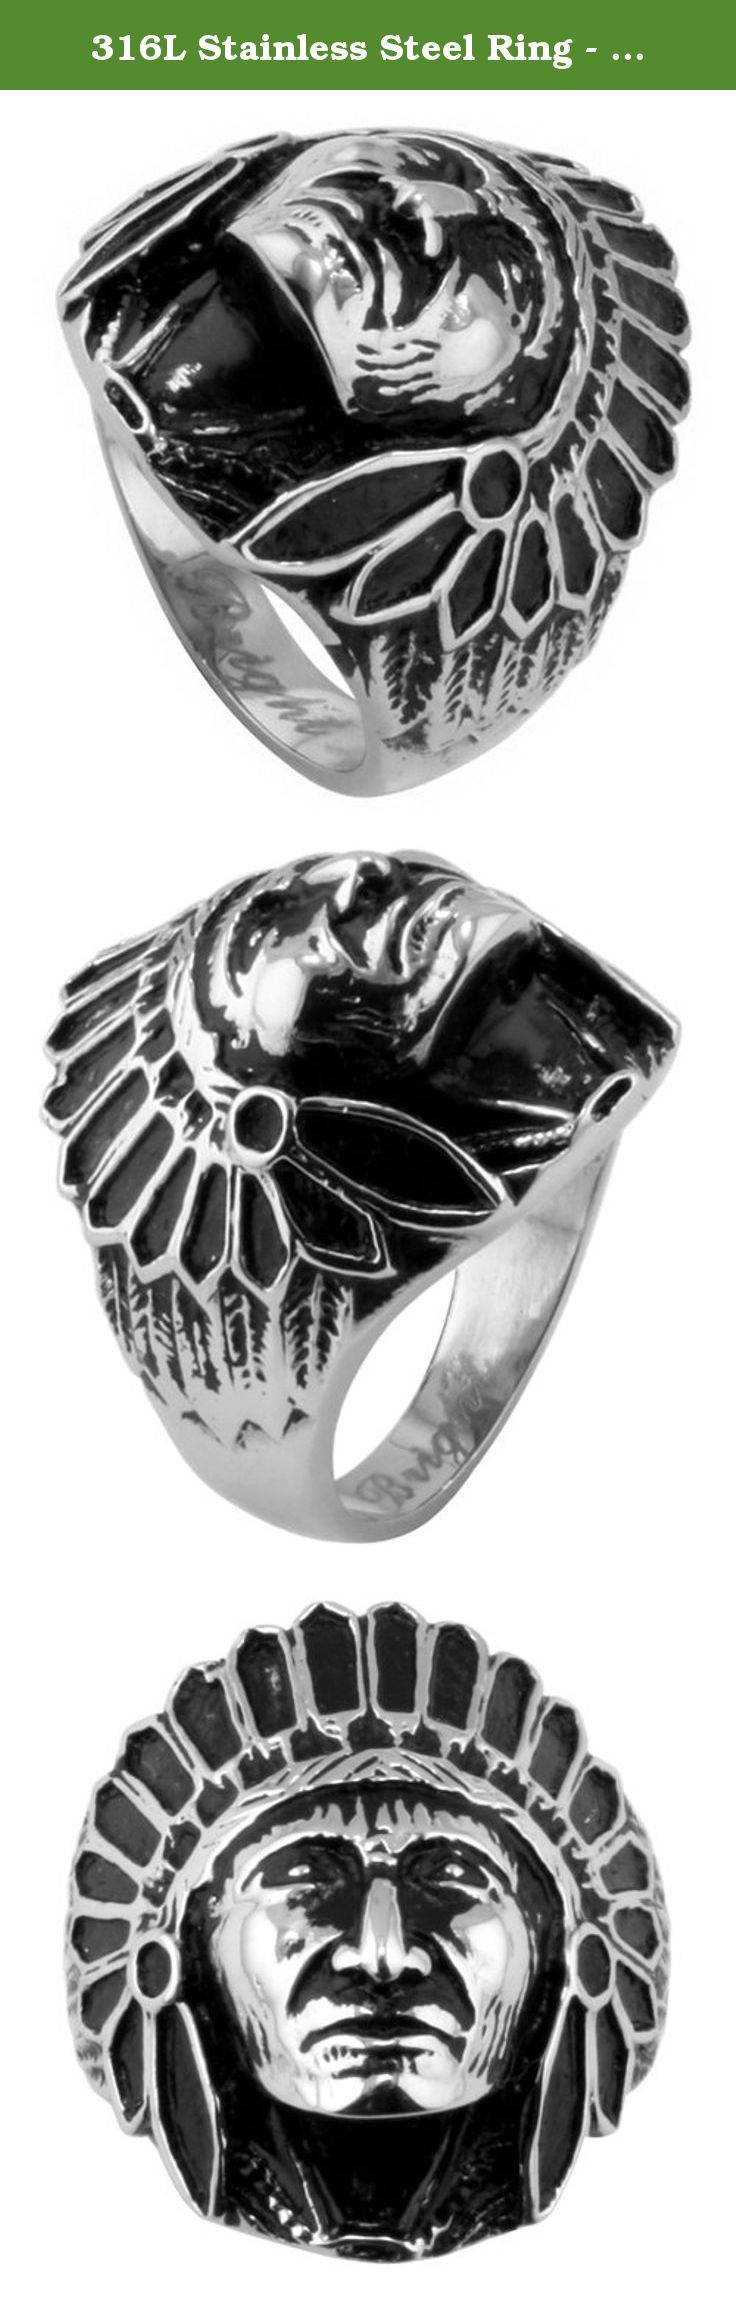 316L Stainless Steel Ring - American Indian Chief Biker Ring. Jewelry Volt's competitive wholesale pricing, along with our high standards for quality and consistency is what sets us apart from other sellers. 316L is the highest grade of stainless steel used in the jewelry market. As a low-carbon austenitic metal, it's highly resistant to corrosion. The applications for 316L grade stainless steel range from medical tools to maritime welding. Our 316L stamped stainless steel jewelry will…